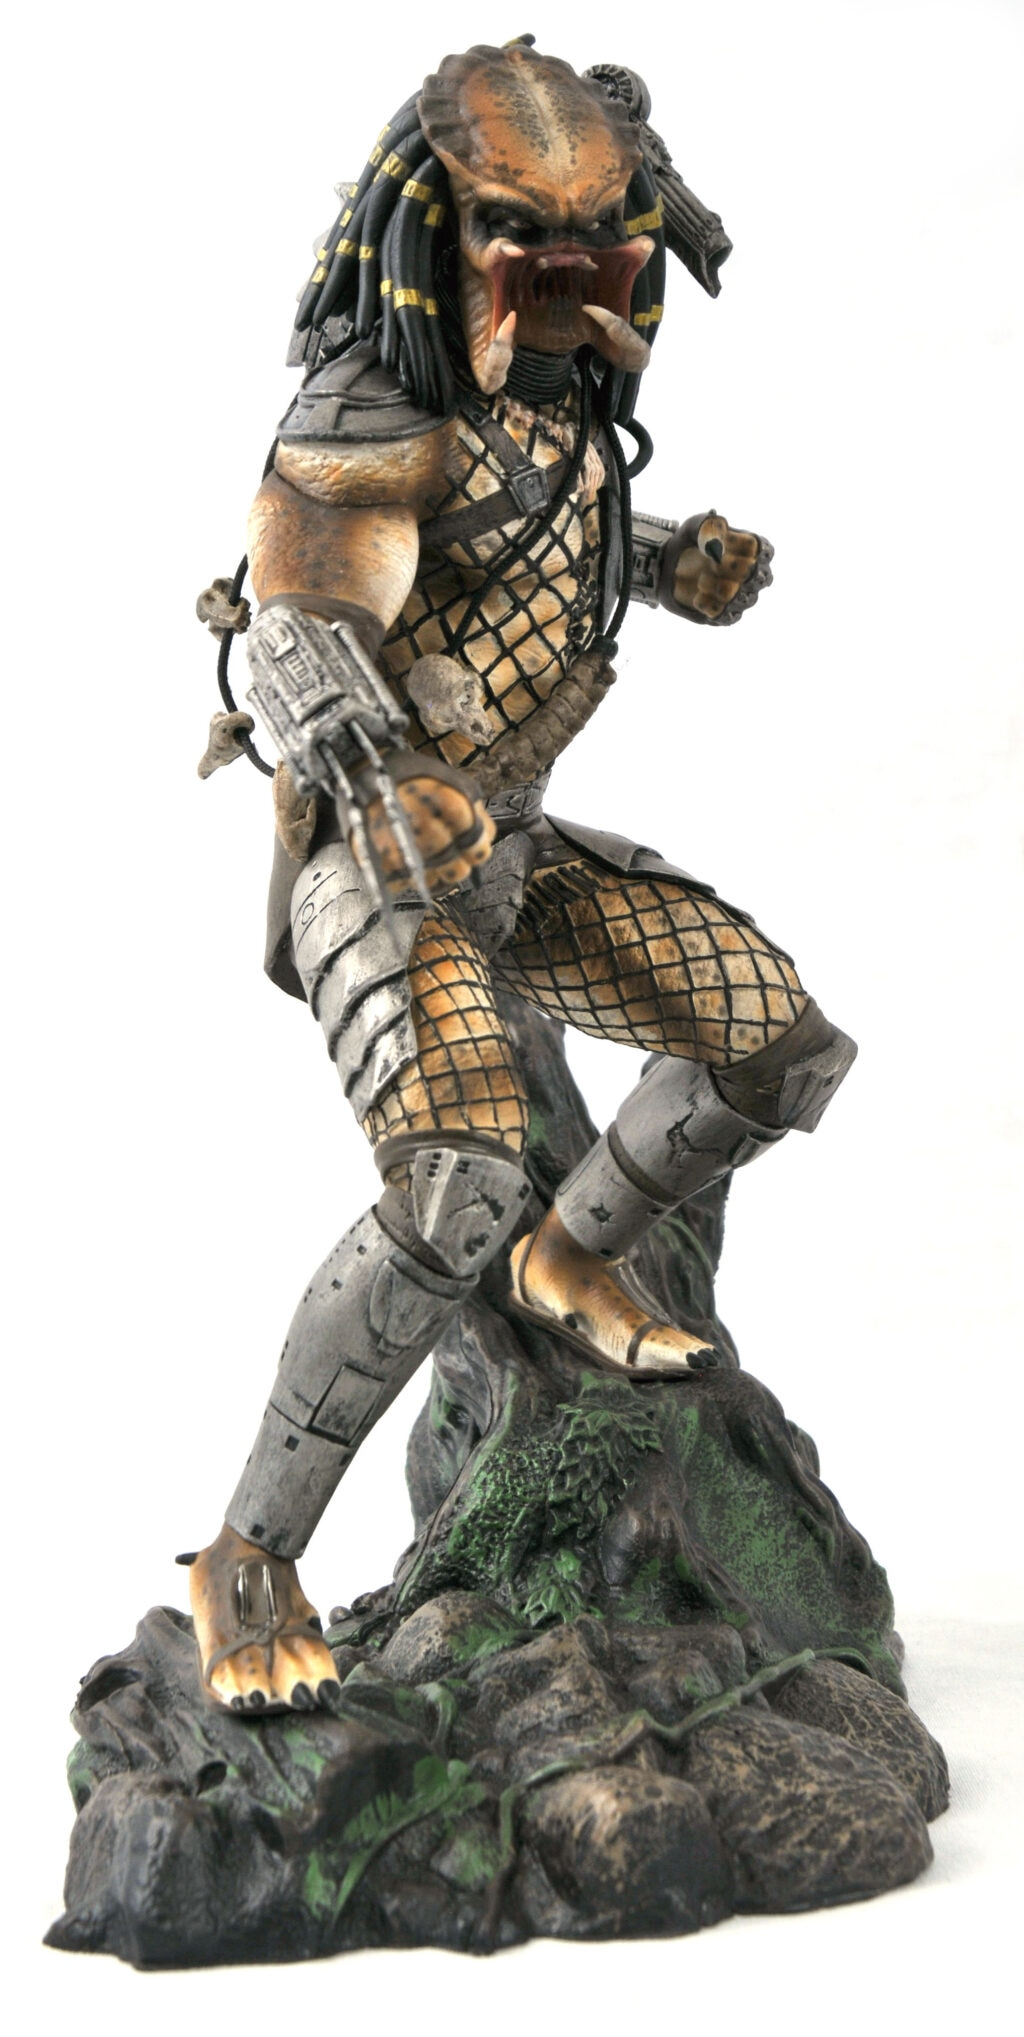 RGB 1549 1024x2037 - PREDATOR Unmasked: Diamond Select Toys Reveal Another SDCC 2020 Exclusive